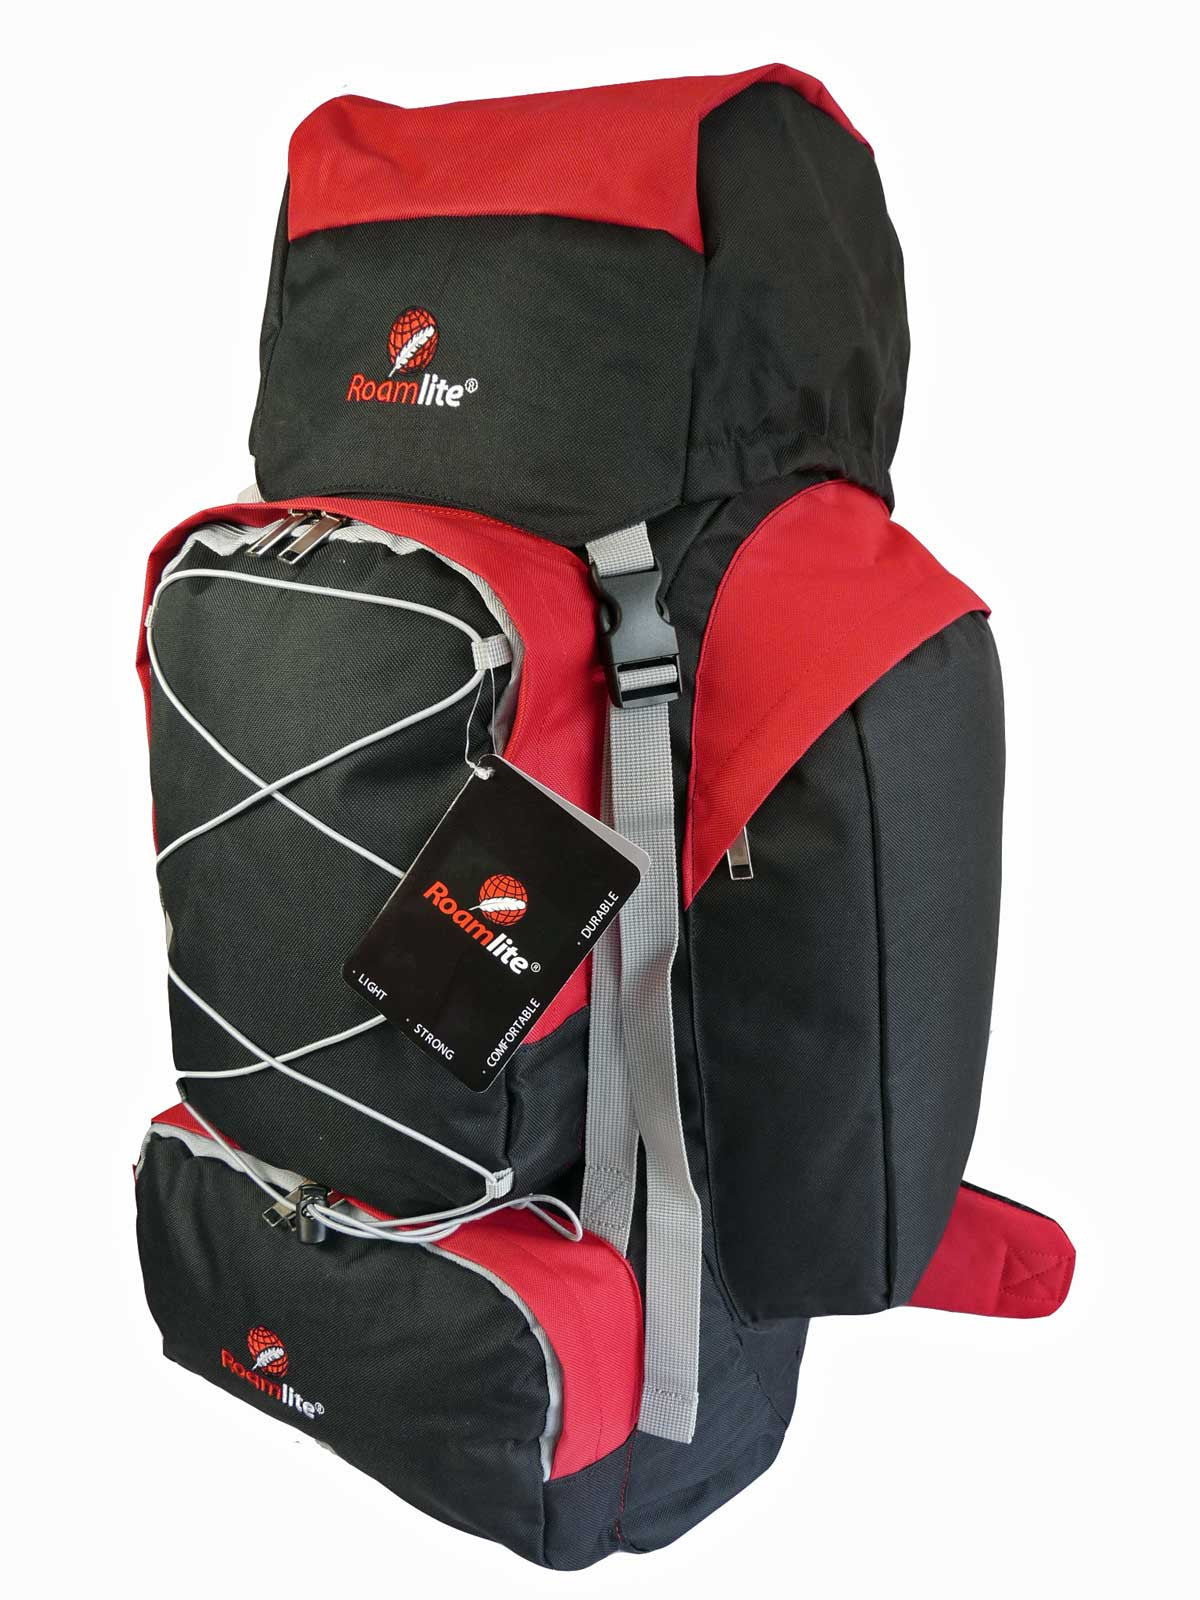 80 100 125 litre backpack red side view